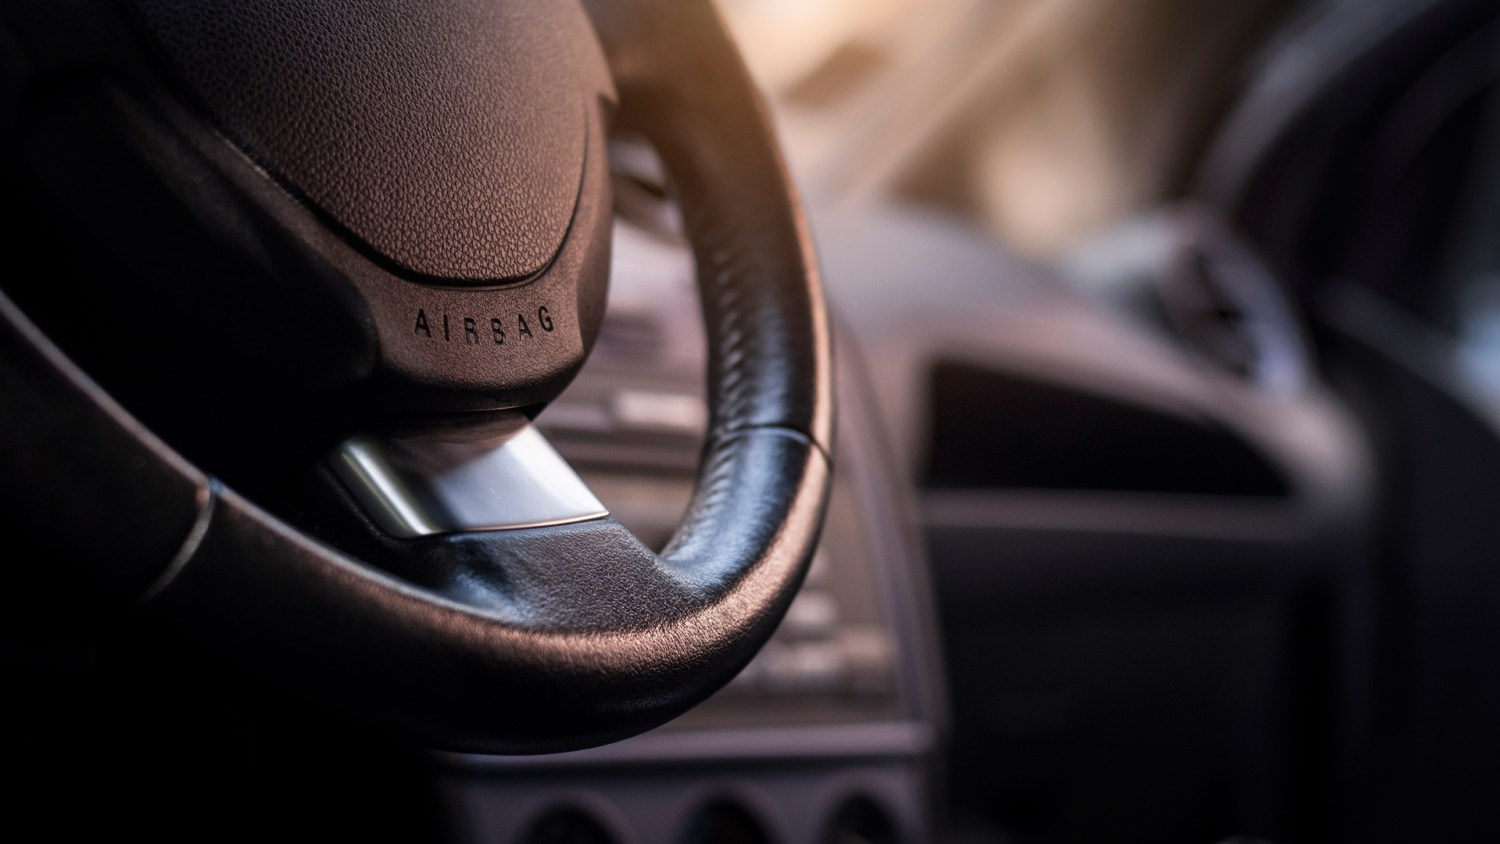 Fake airbags are common